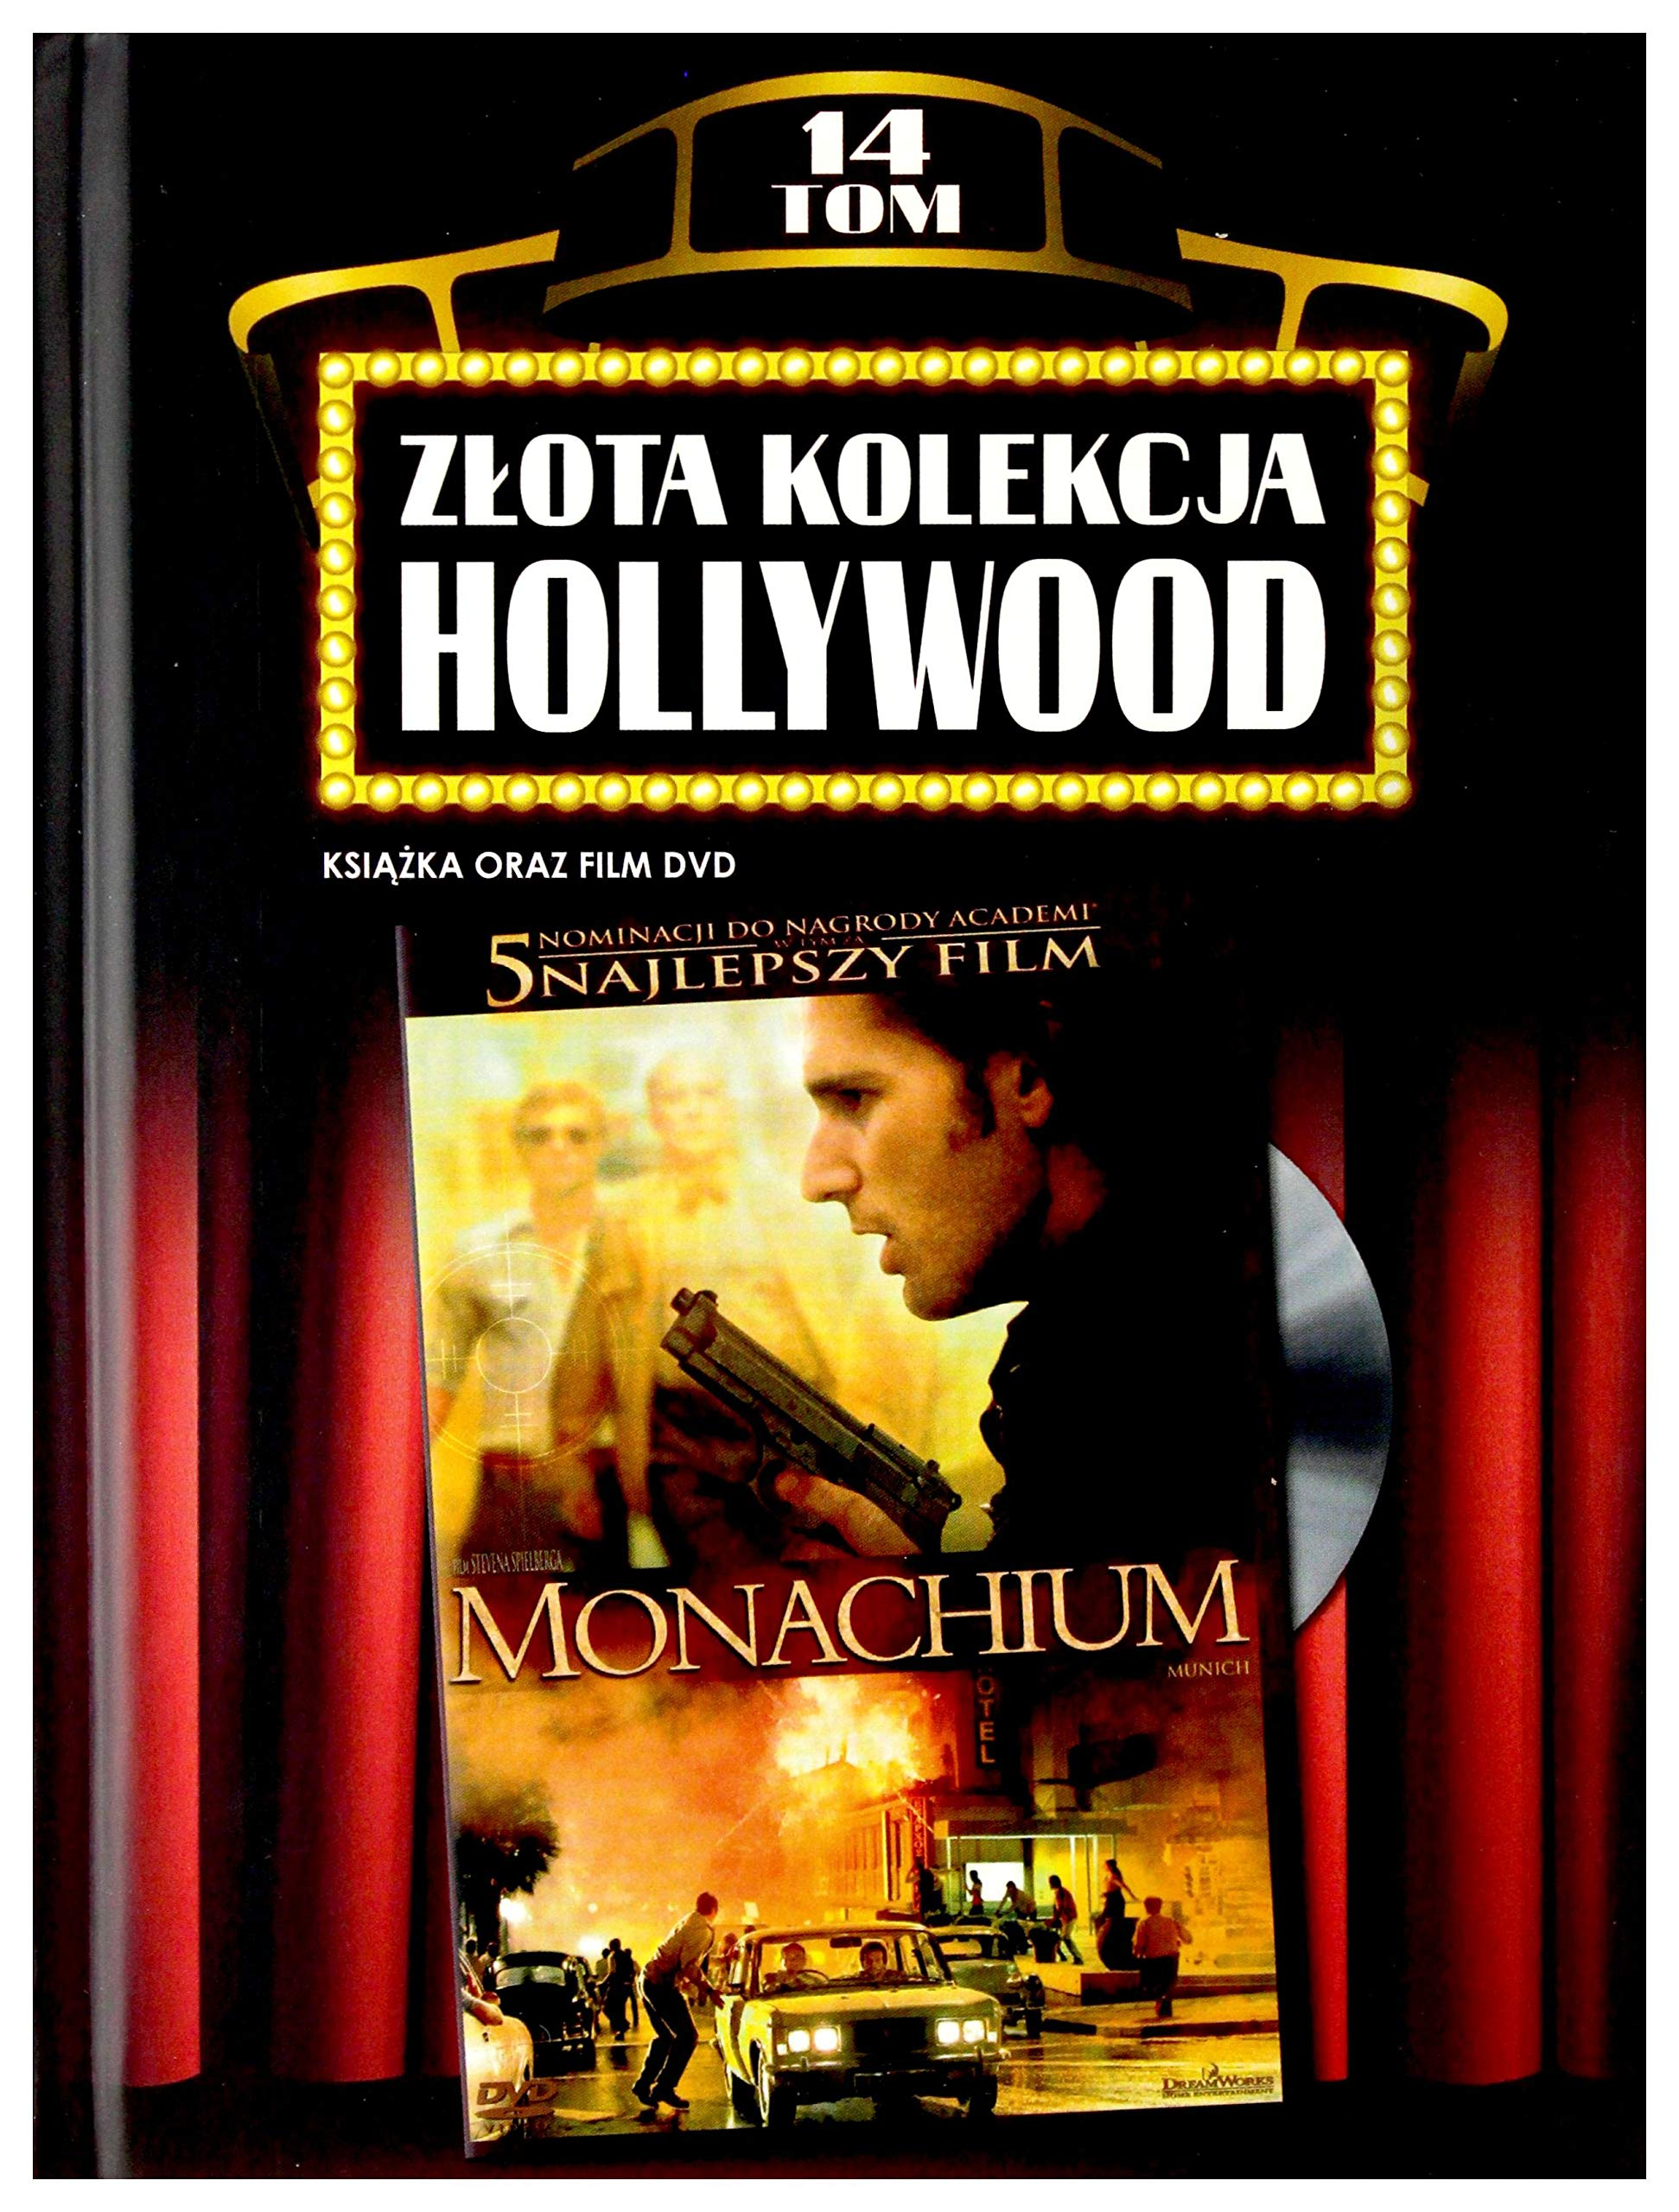 Munich [DVD] (English audio) Eric Bana